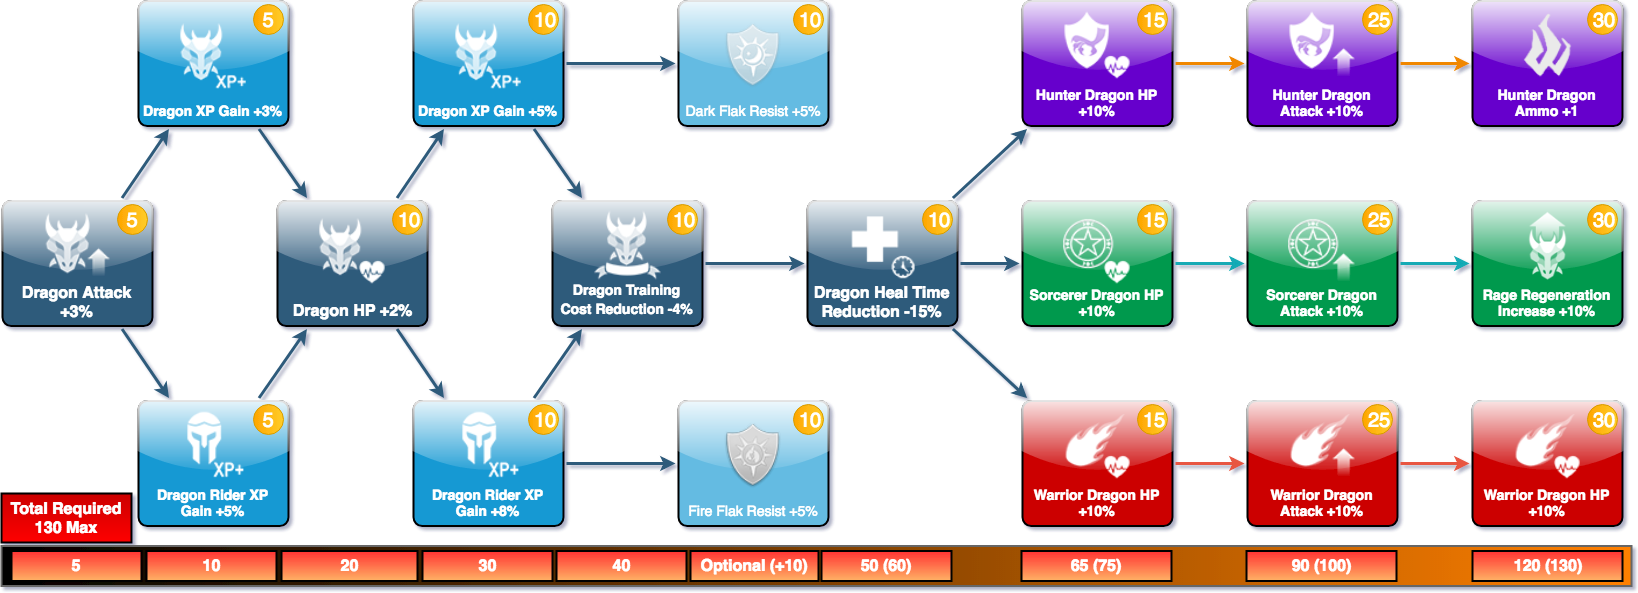 War Dragons - Malus Skill Tree